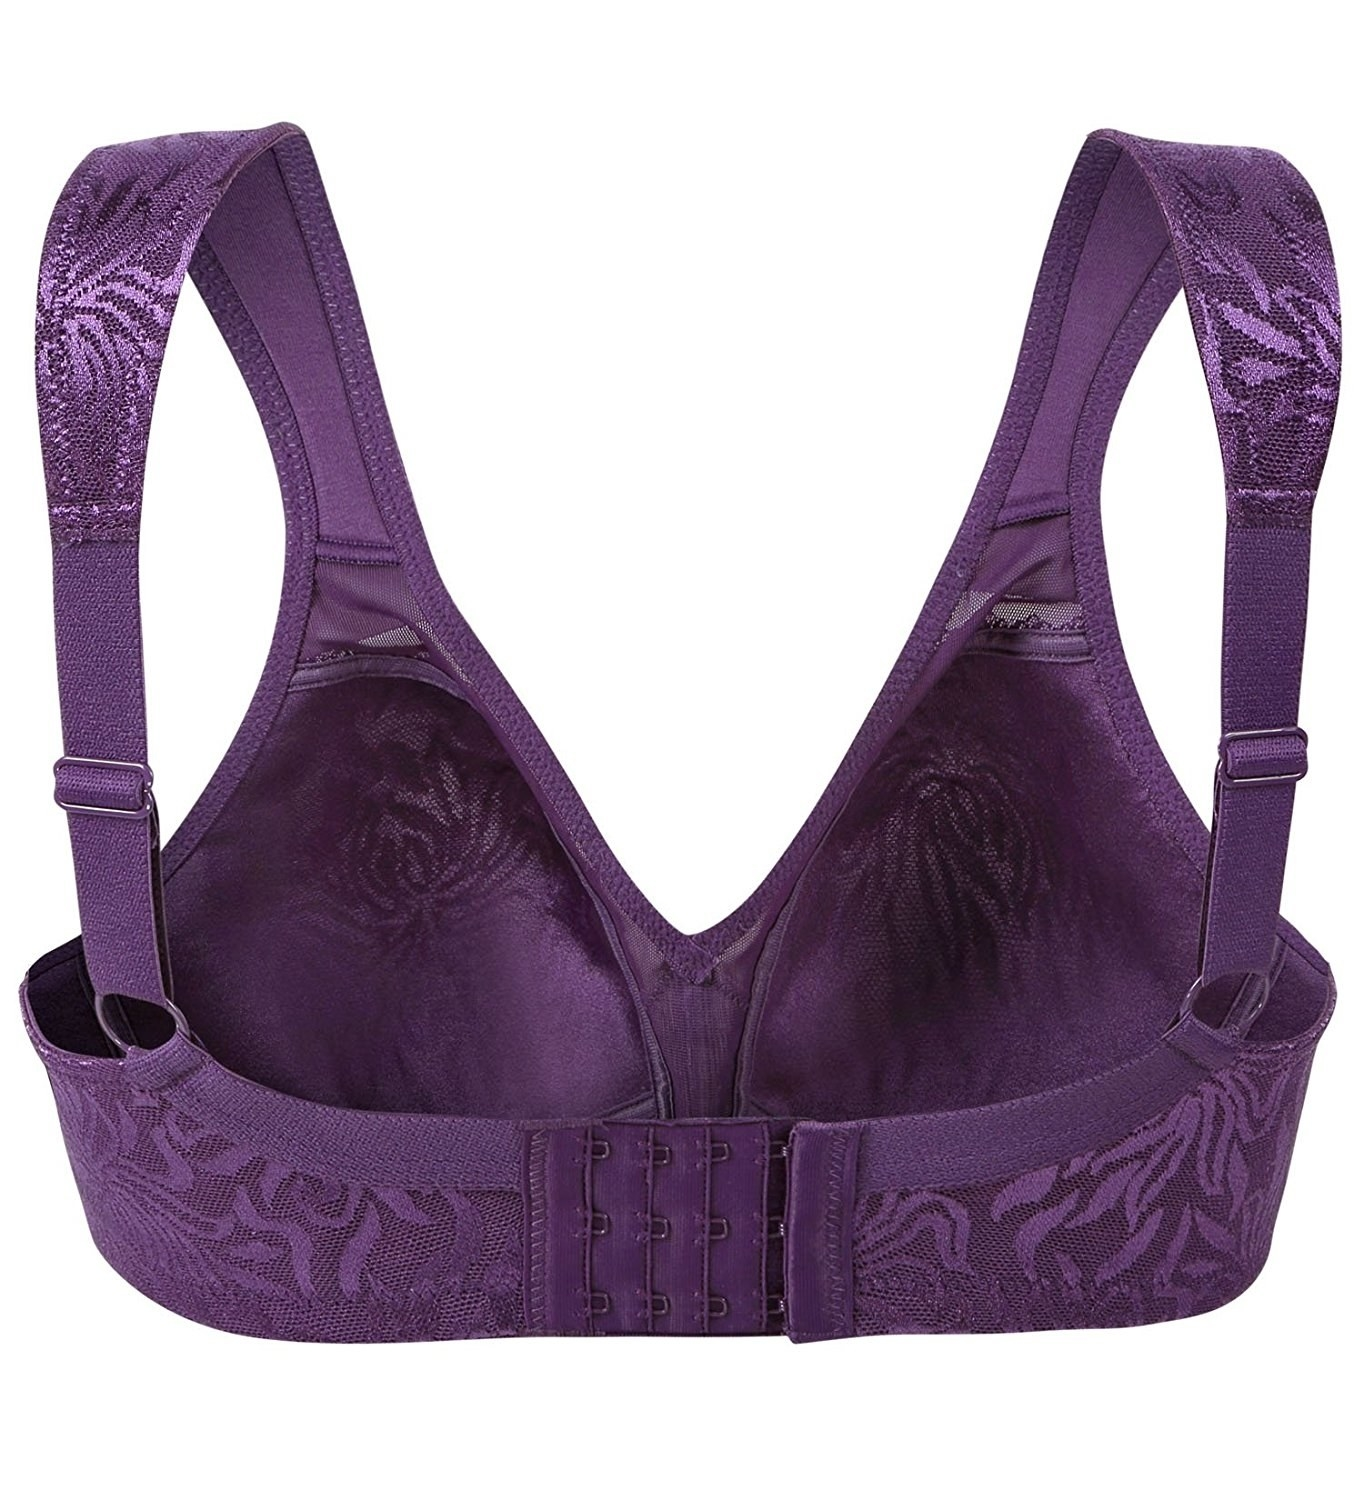 d1161c8ce3af9 ... full-coverage bra you might just forget you re wearing. Share On  Facebook Share ...